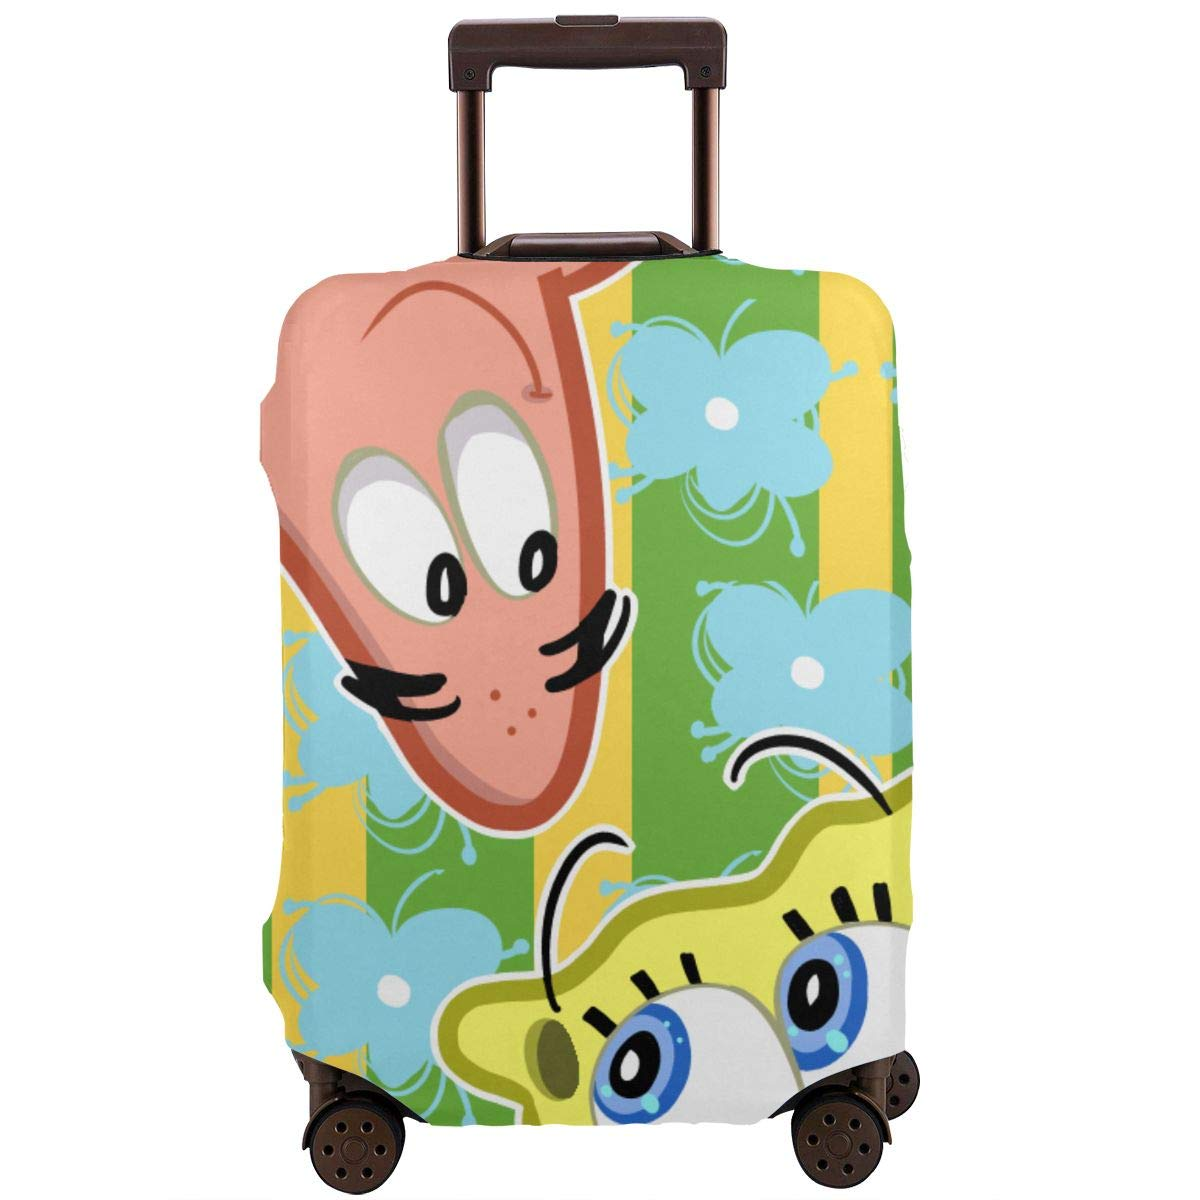 Travel Luggage Cover Cartoon Love Spongebob Squarepants Travel Luggage Cover Suitcase Protector Fits 26-28 Inch Washable Baggage Covers